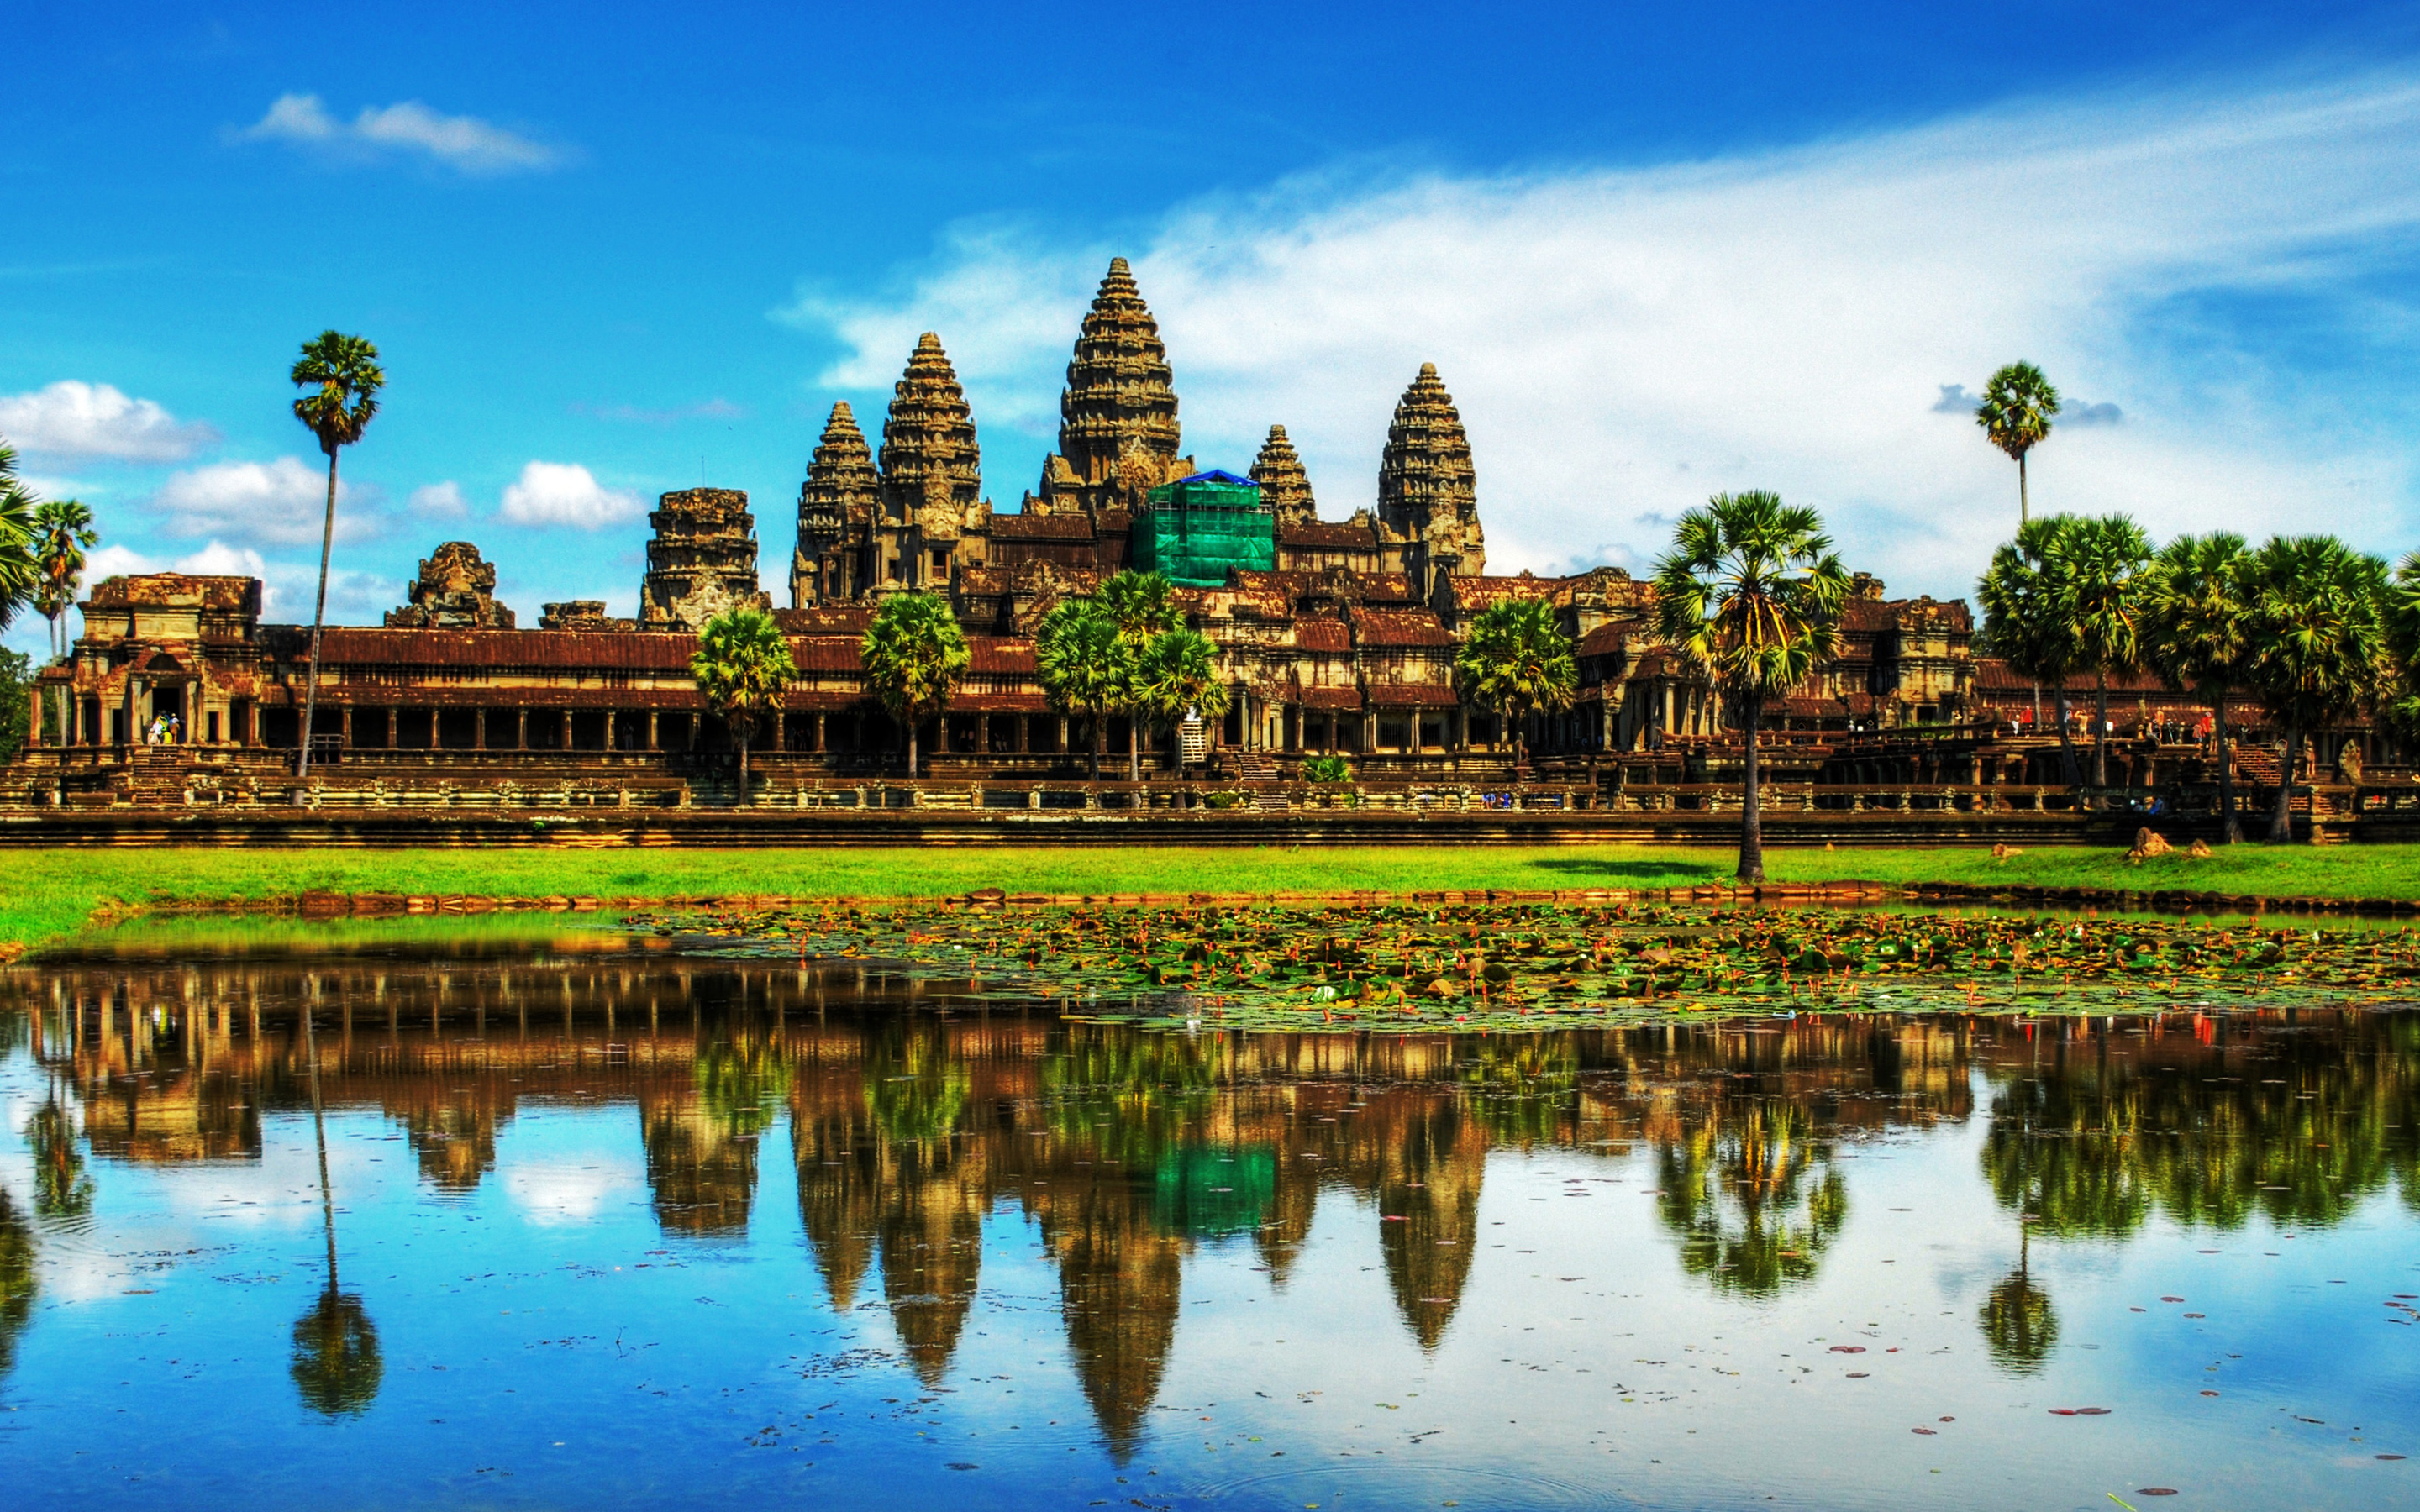 how to attract tourists to visit cambodia